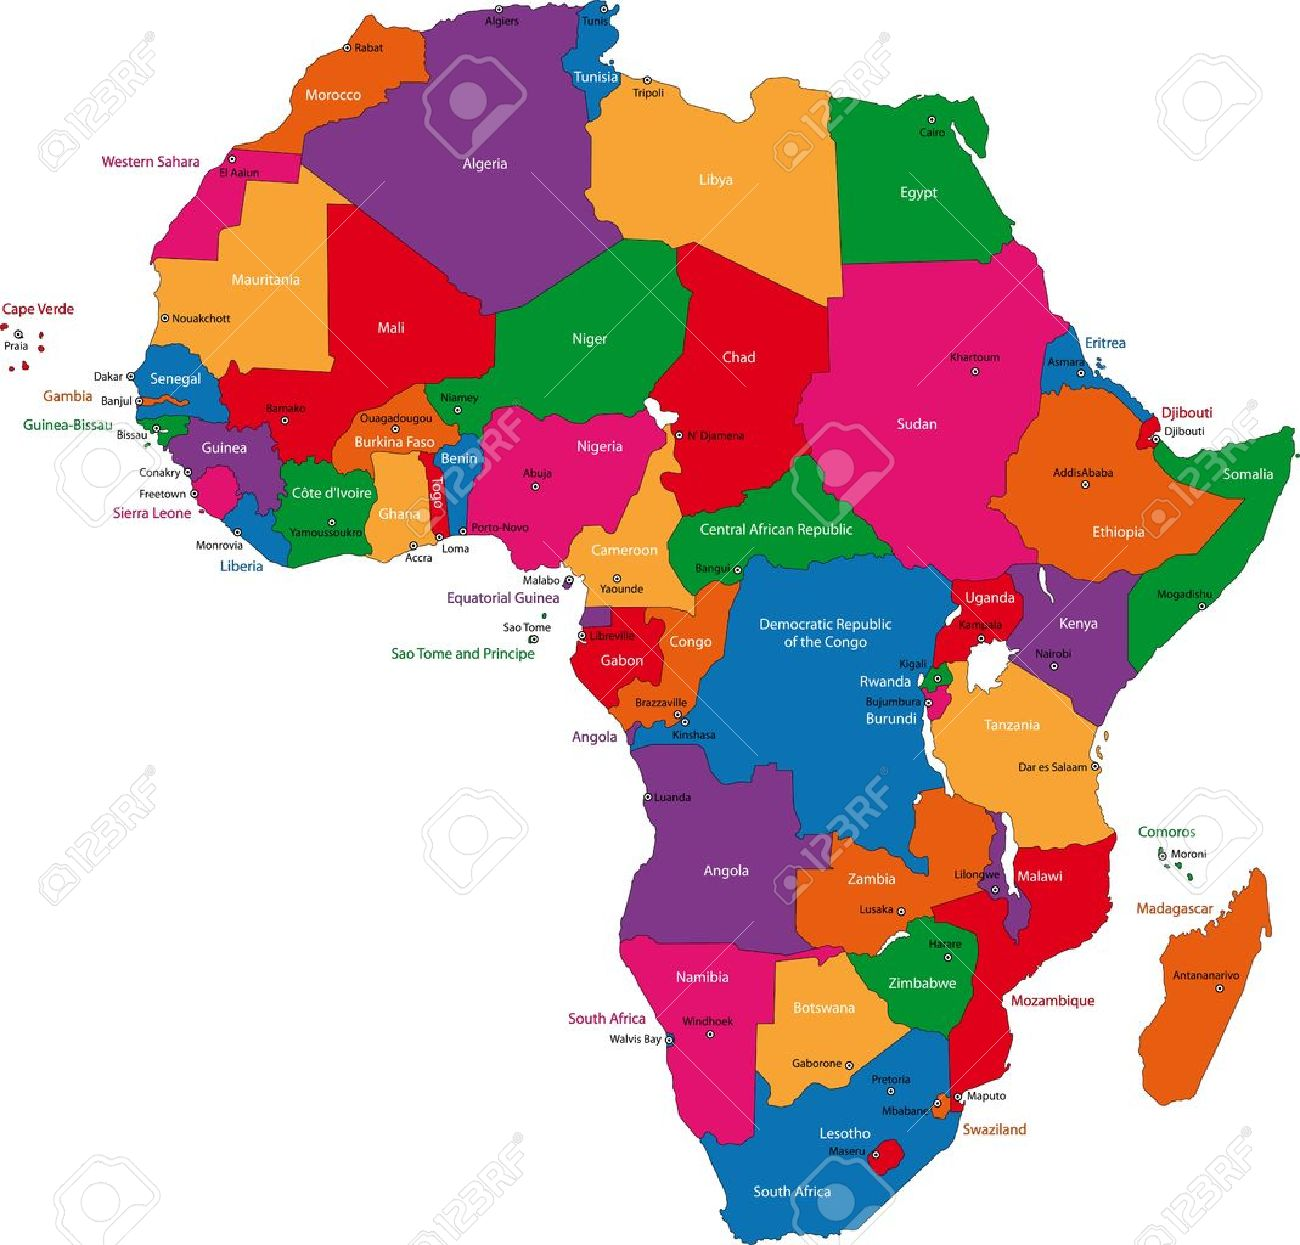 Colorful africa map with countries and capital cities royalty free colorful africa map with countries and capital cities stock vector 21687731 publicscrutiny Image collections